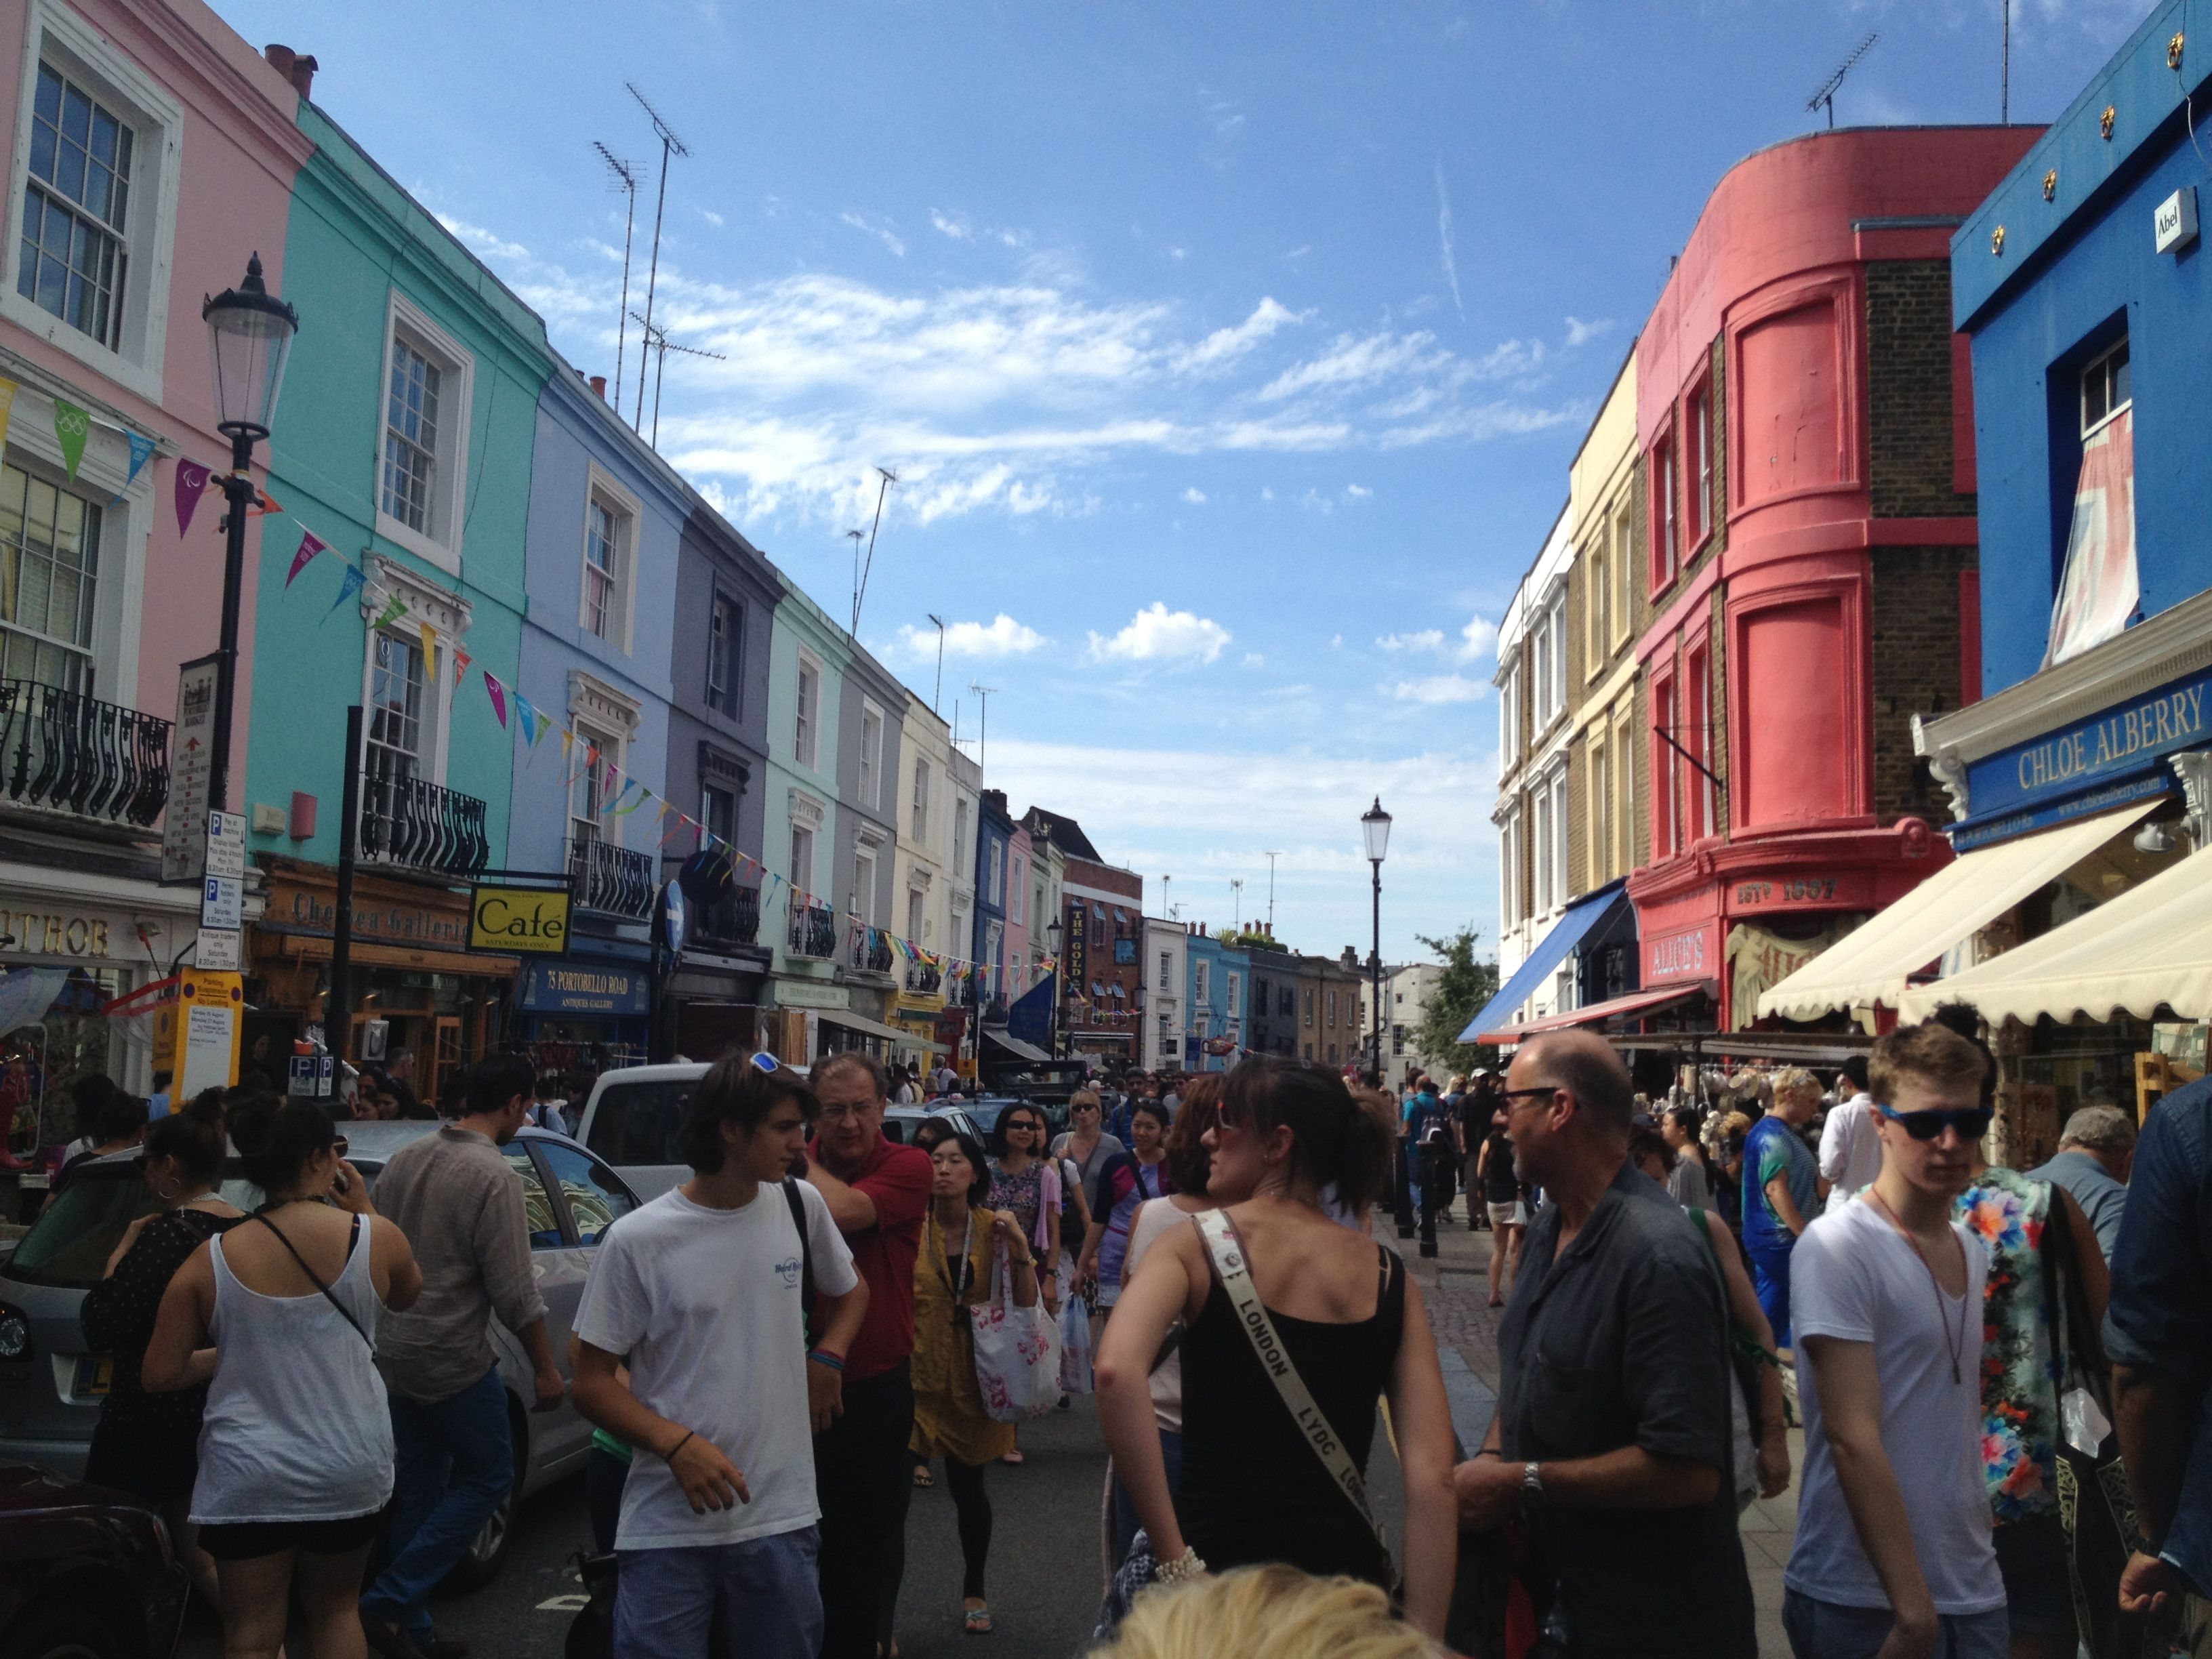 Portabello Market - London | been there | Pinterest | Travel sights ...